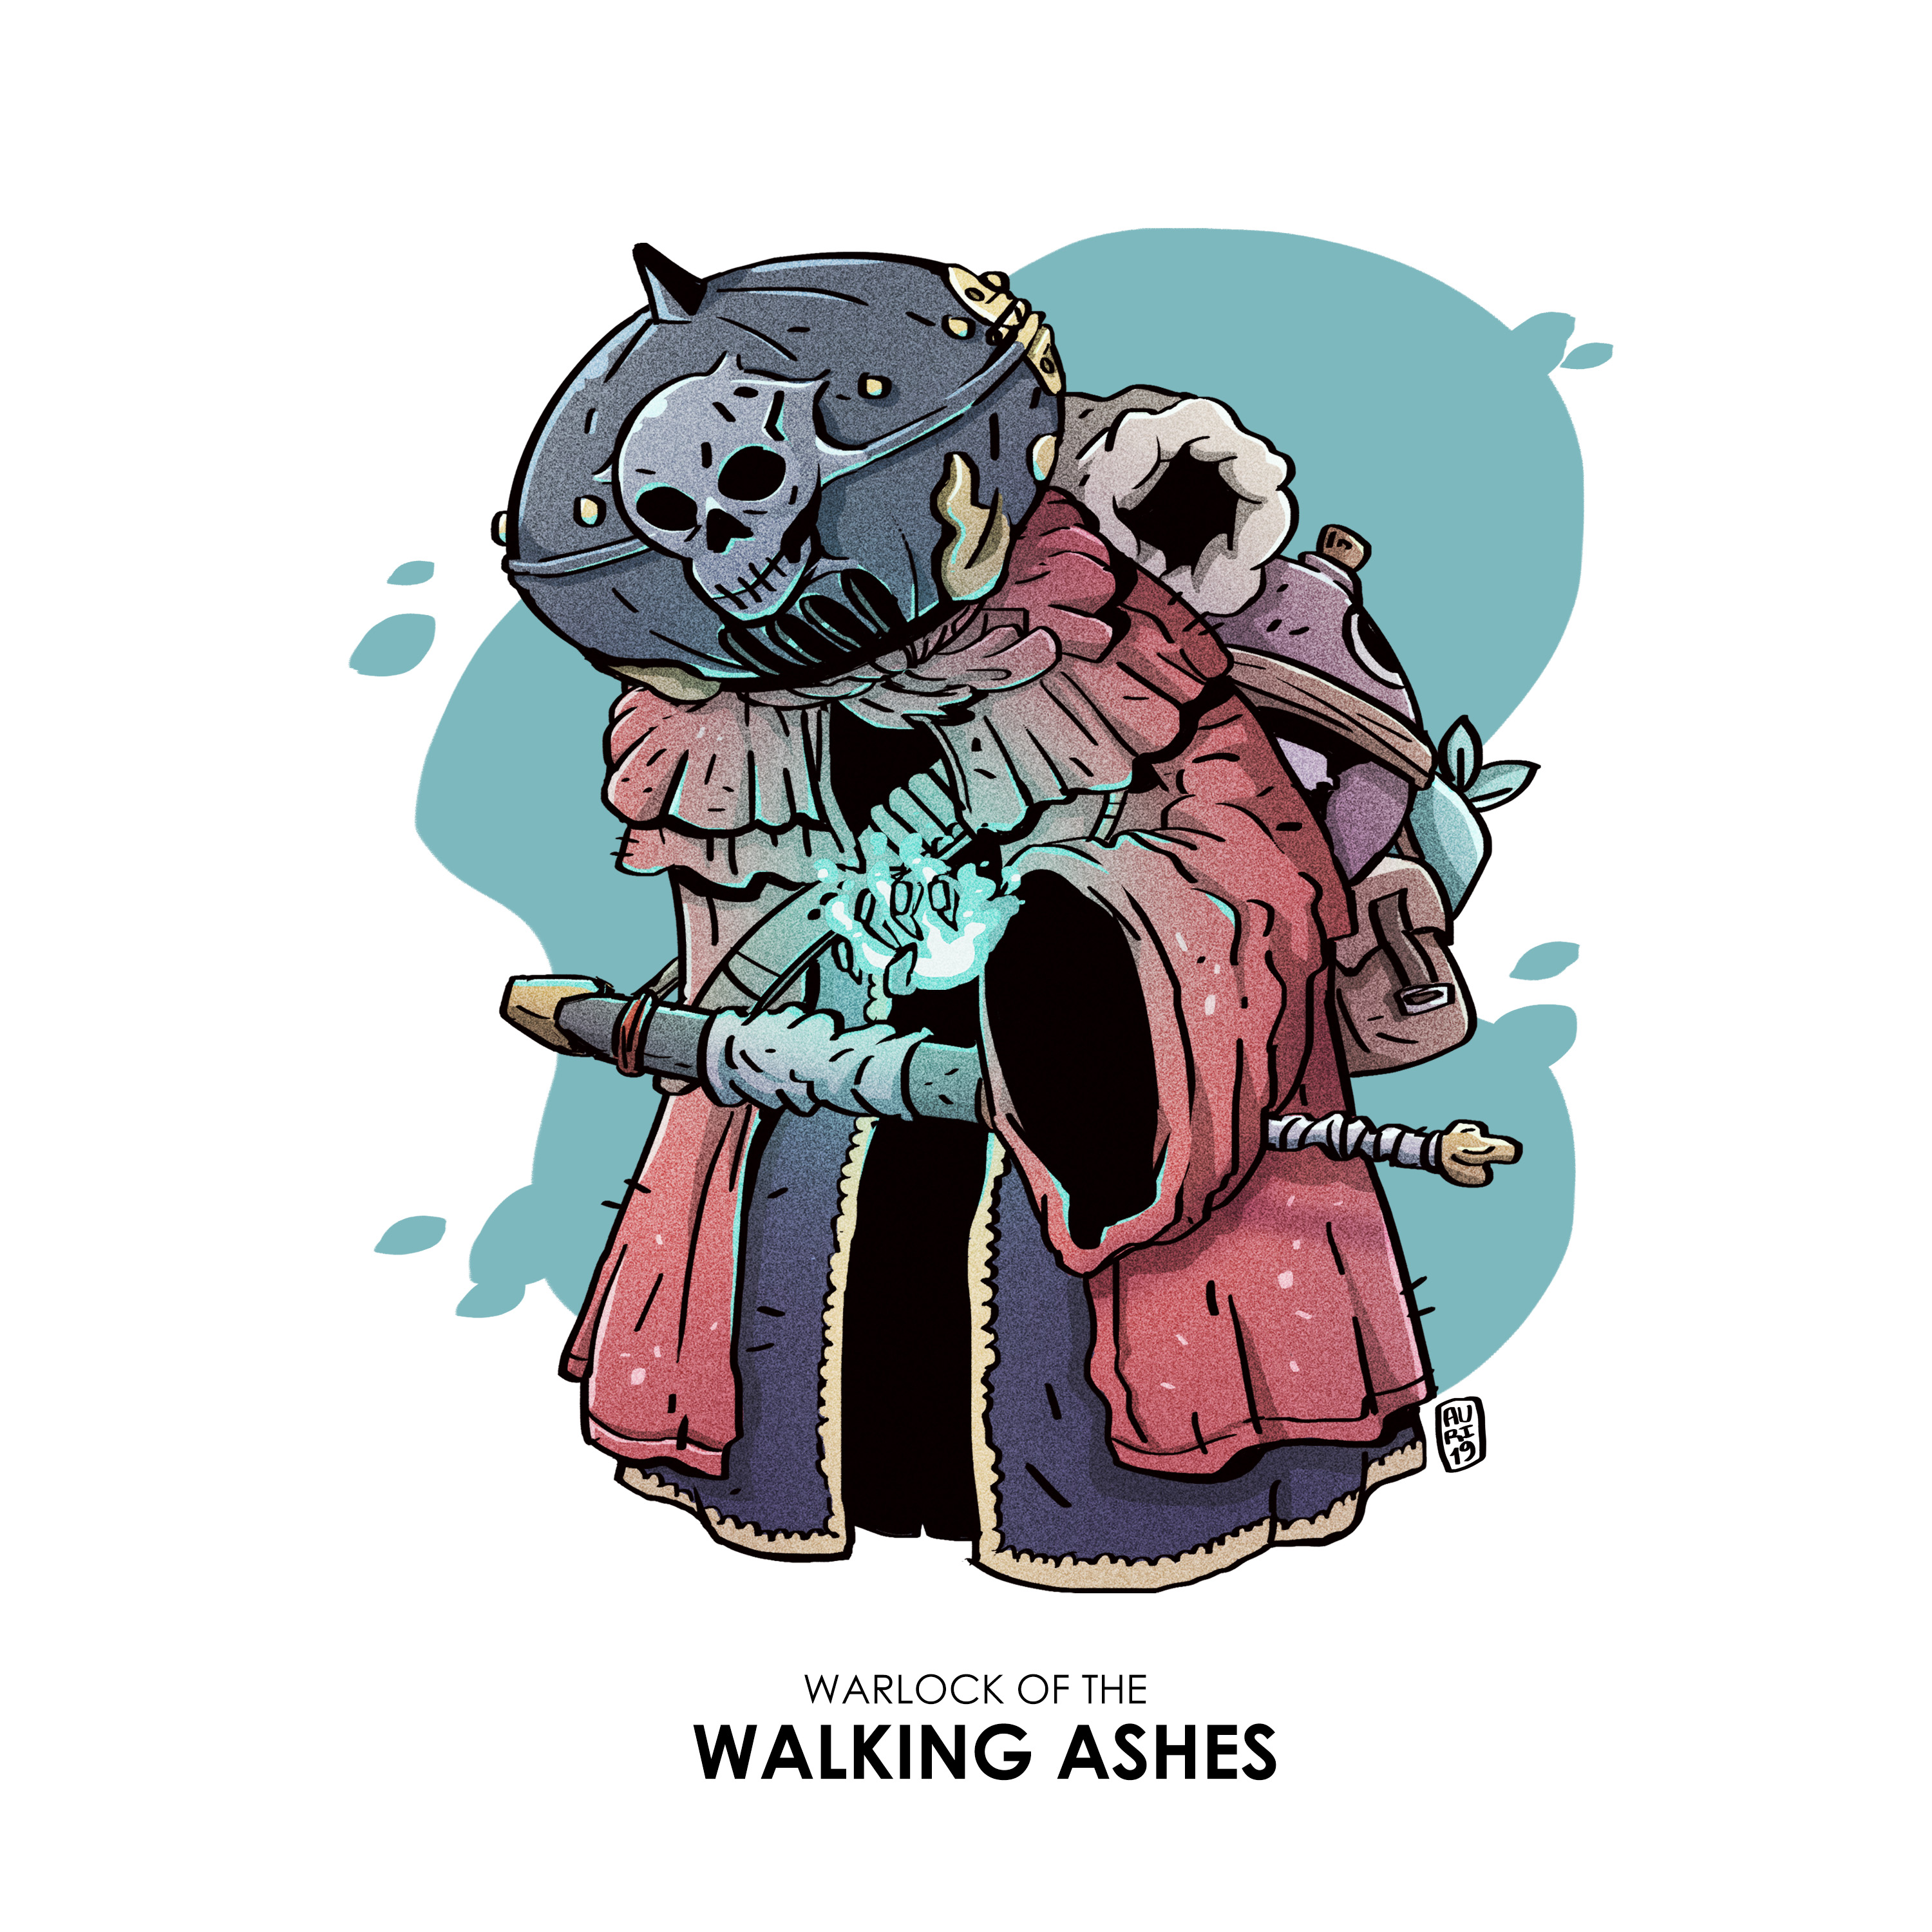 Warlock of the walking ashes (Draw this in your Style)